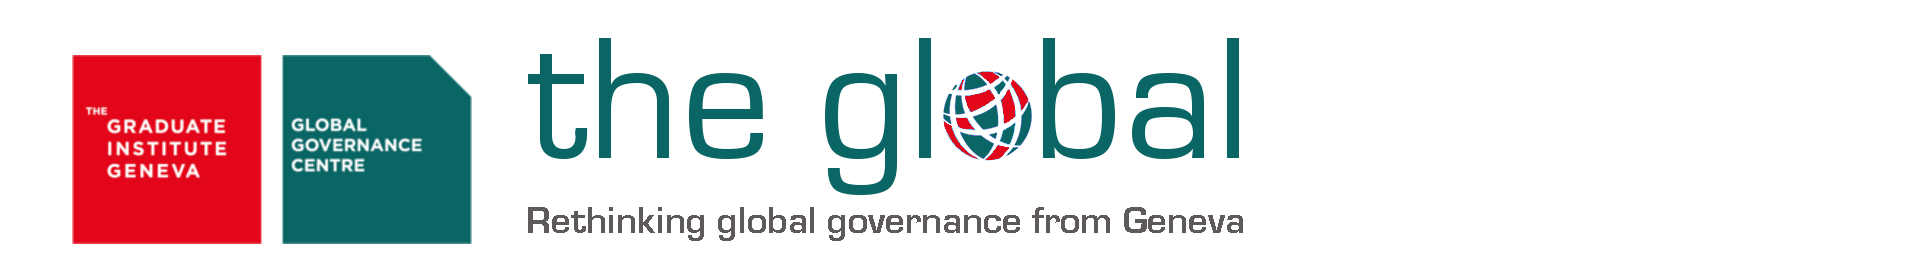 the global - rethinking global governance